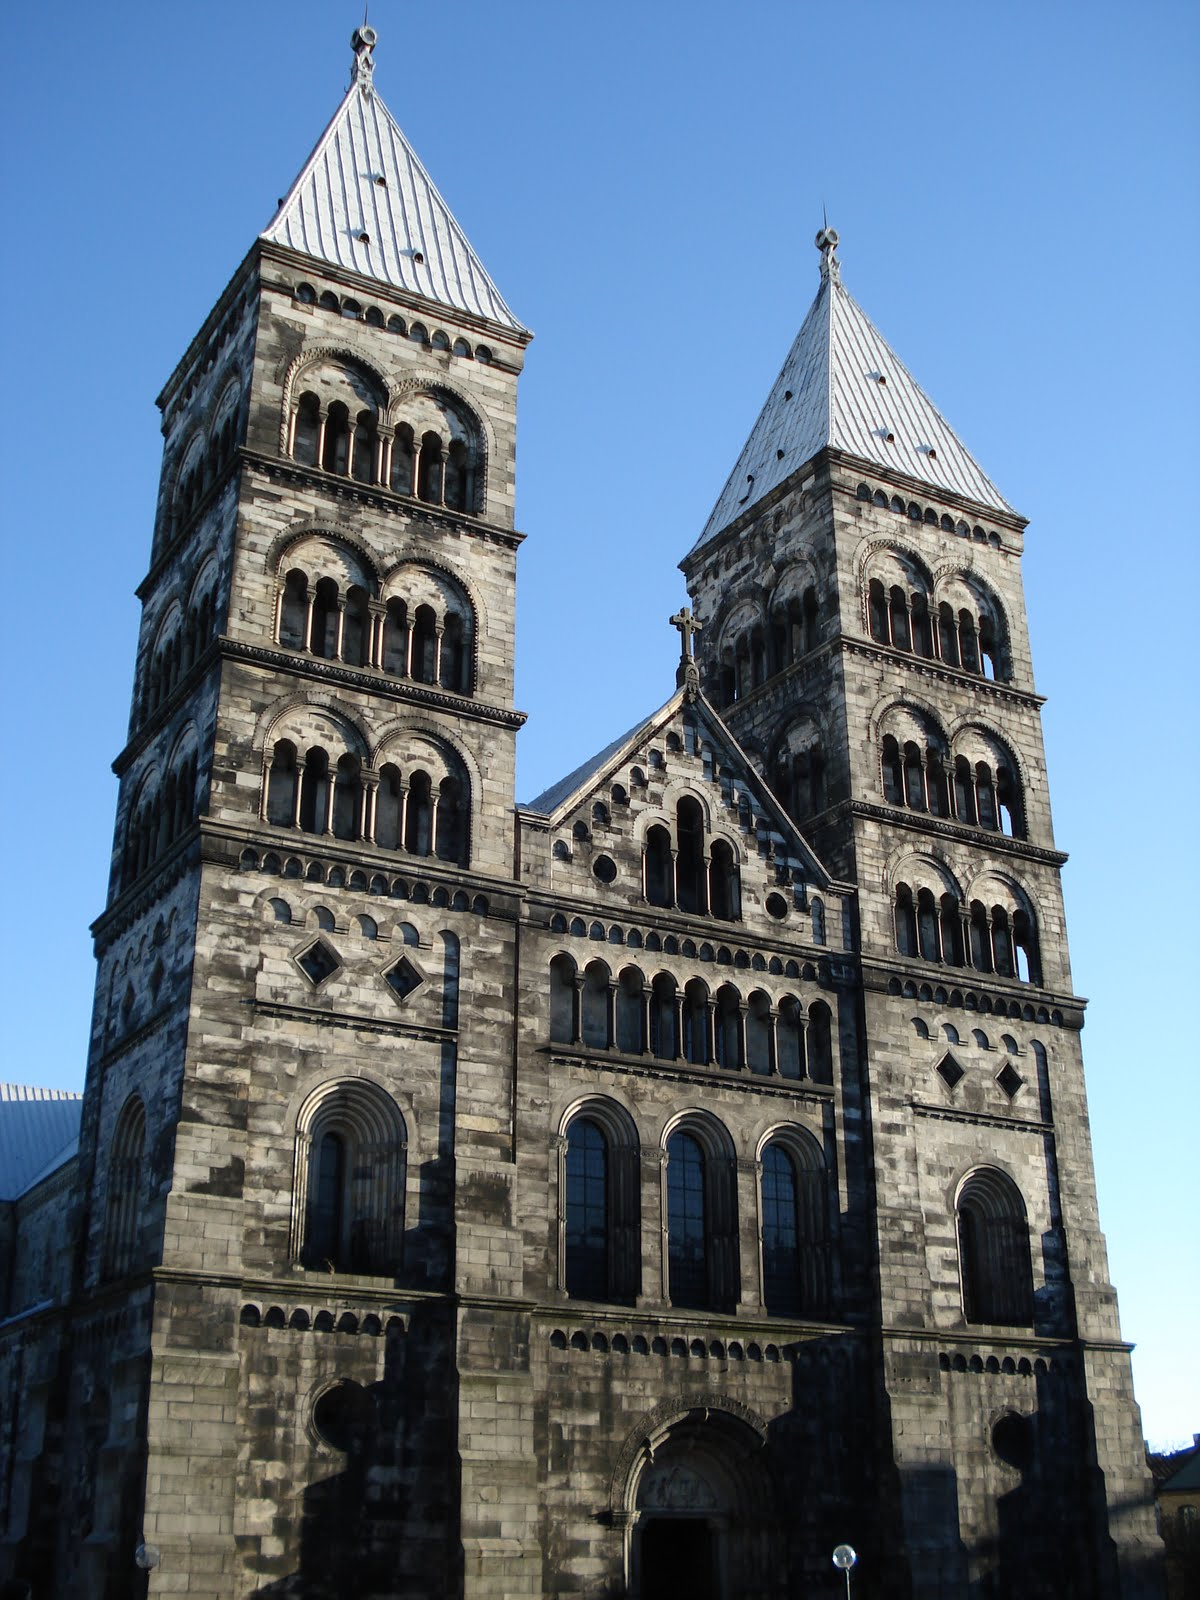 Lund%252BCathedral (built during Danish rule)